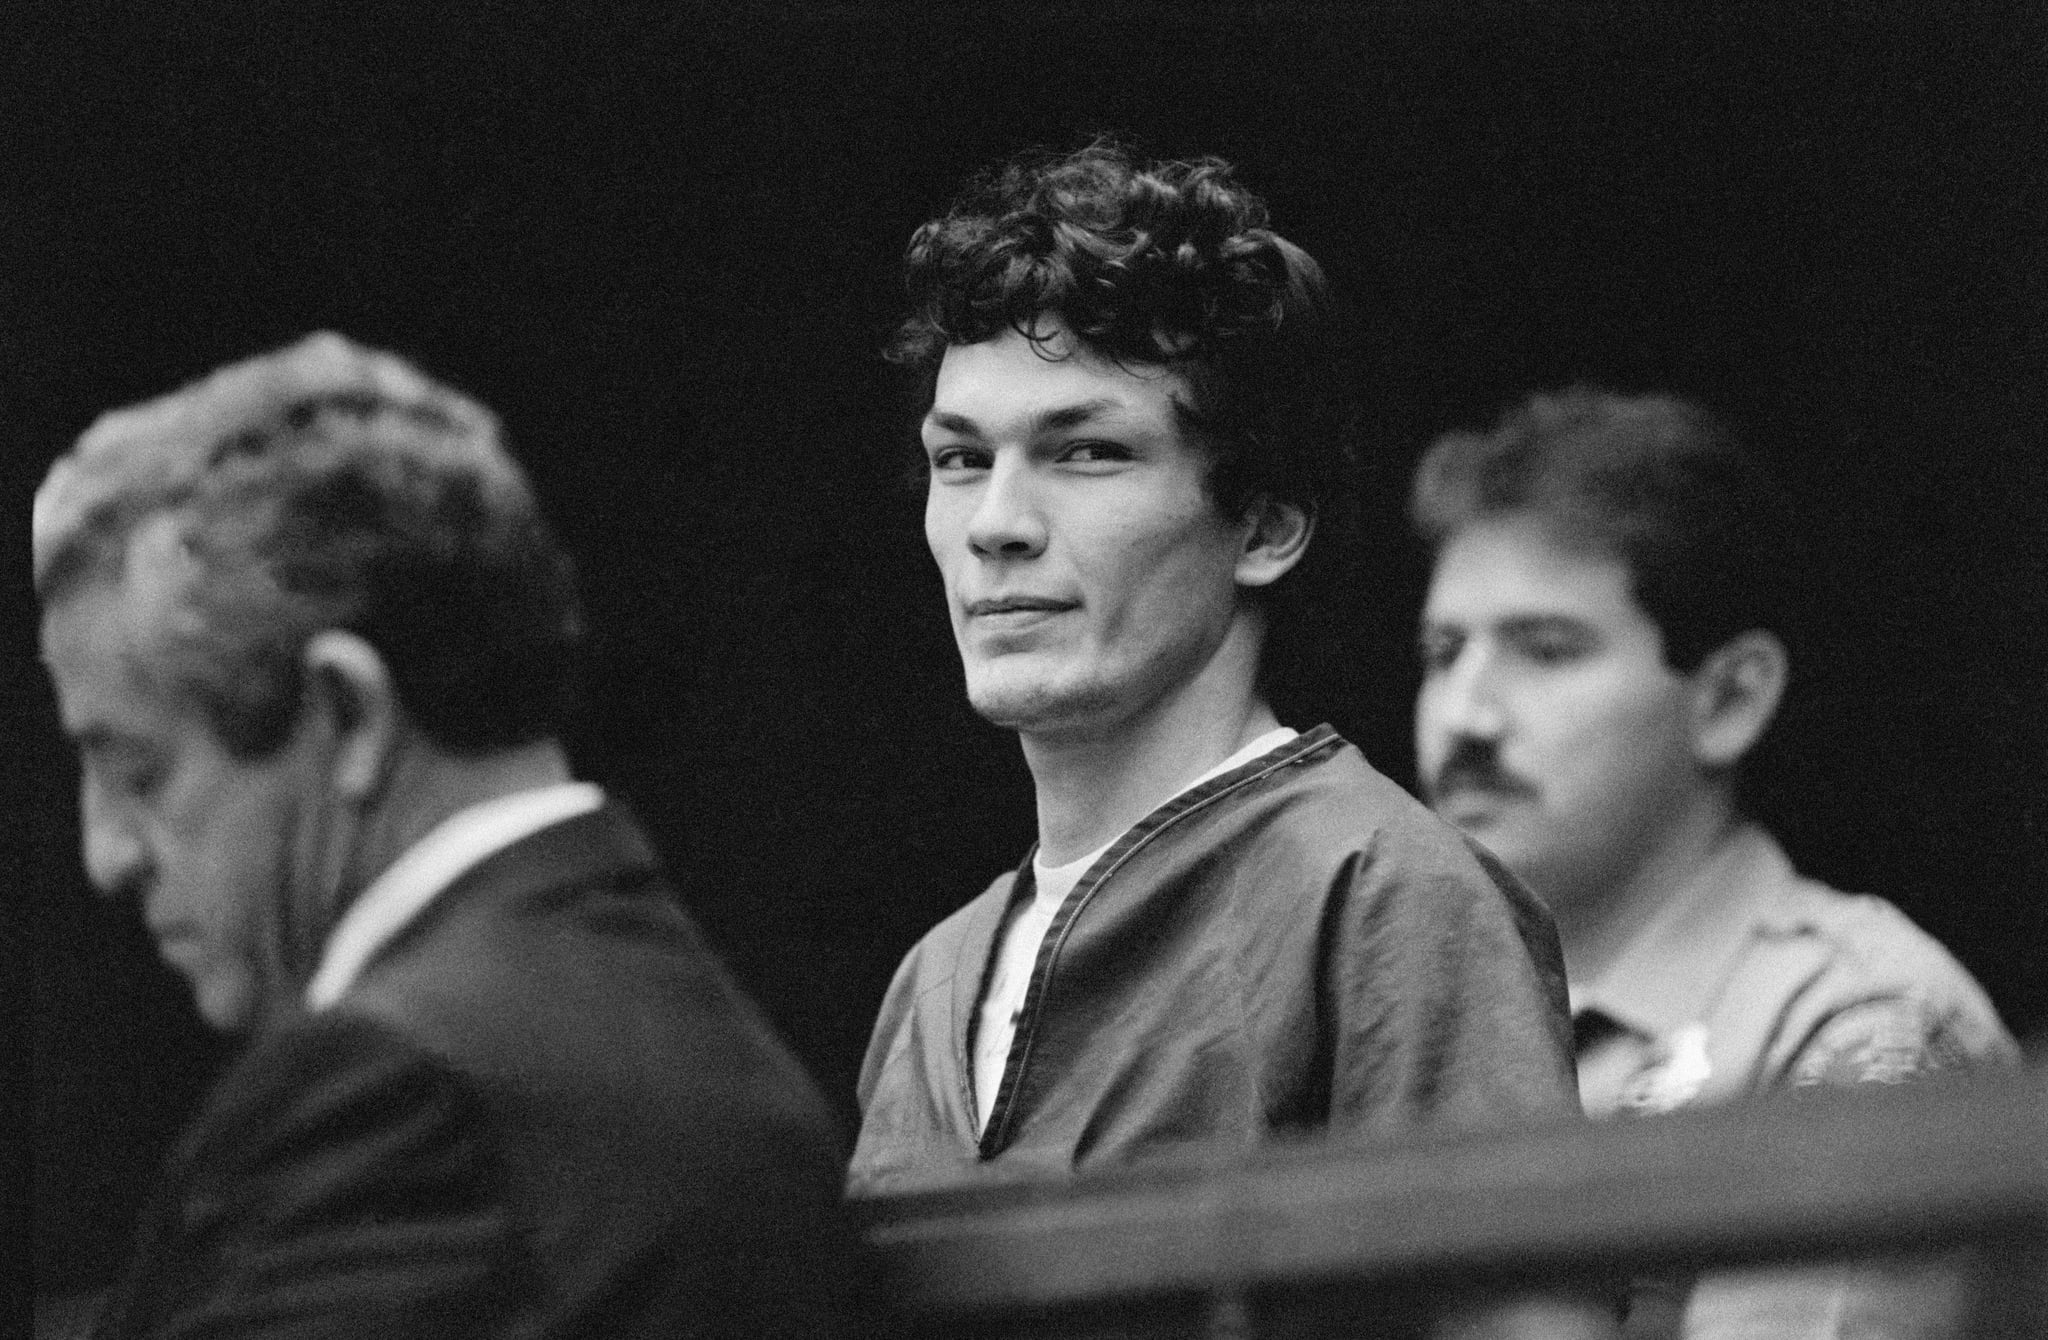 Richard Ramirez, accused of being the serial killer called the